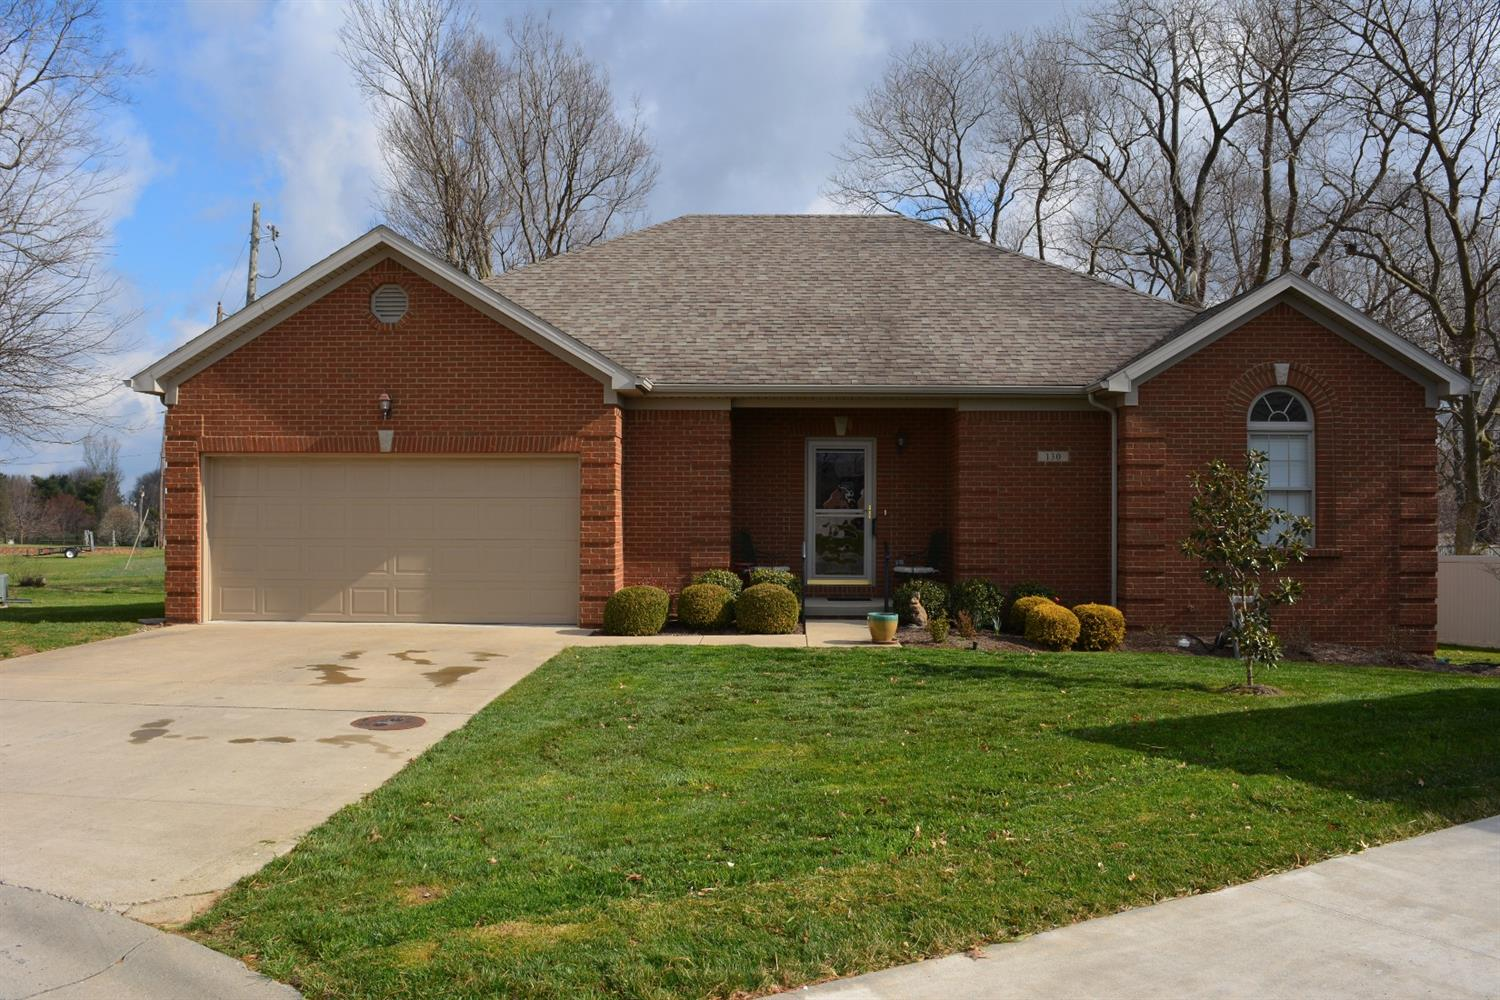 Home For Sale at 123 Kendall Dr, Danville, KY 40422